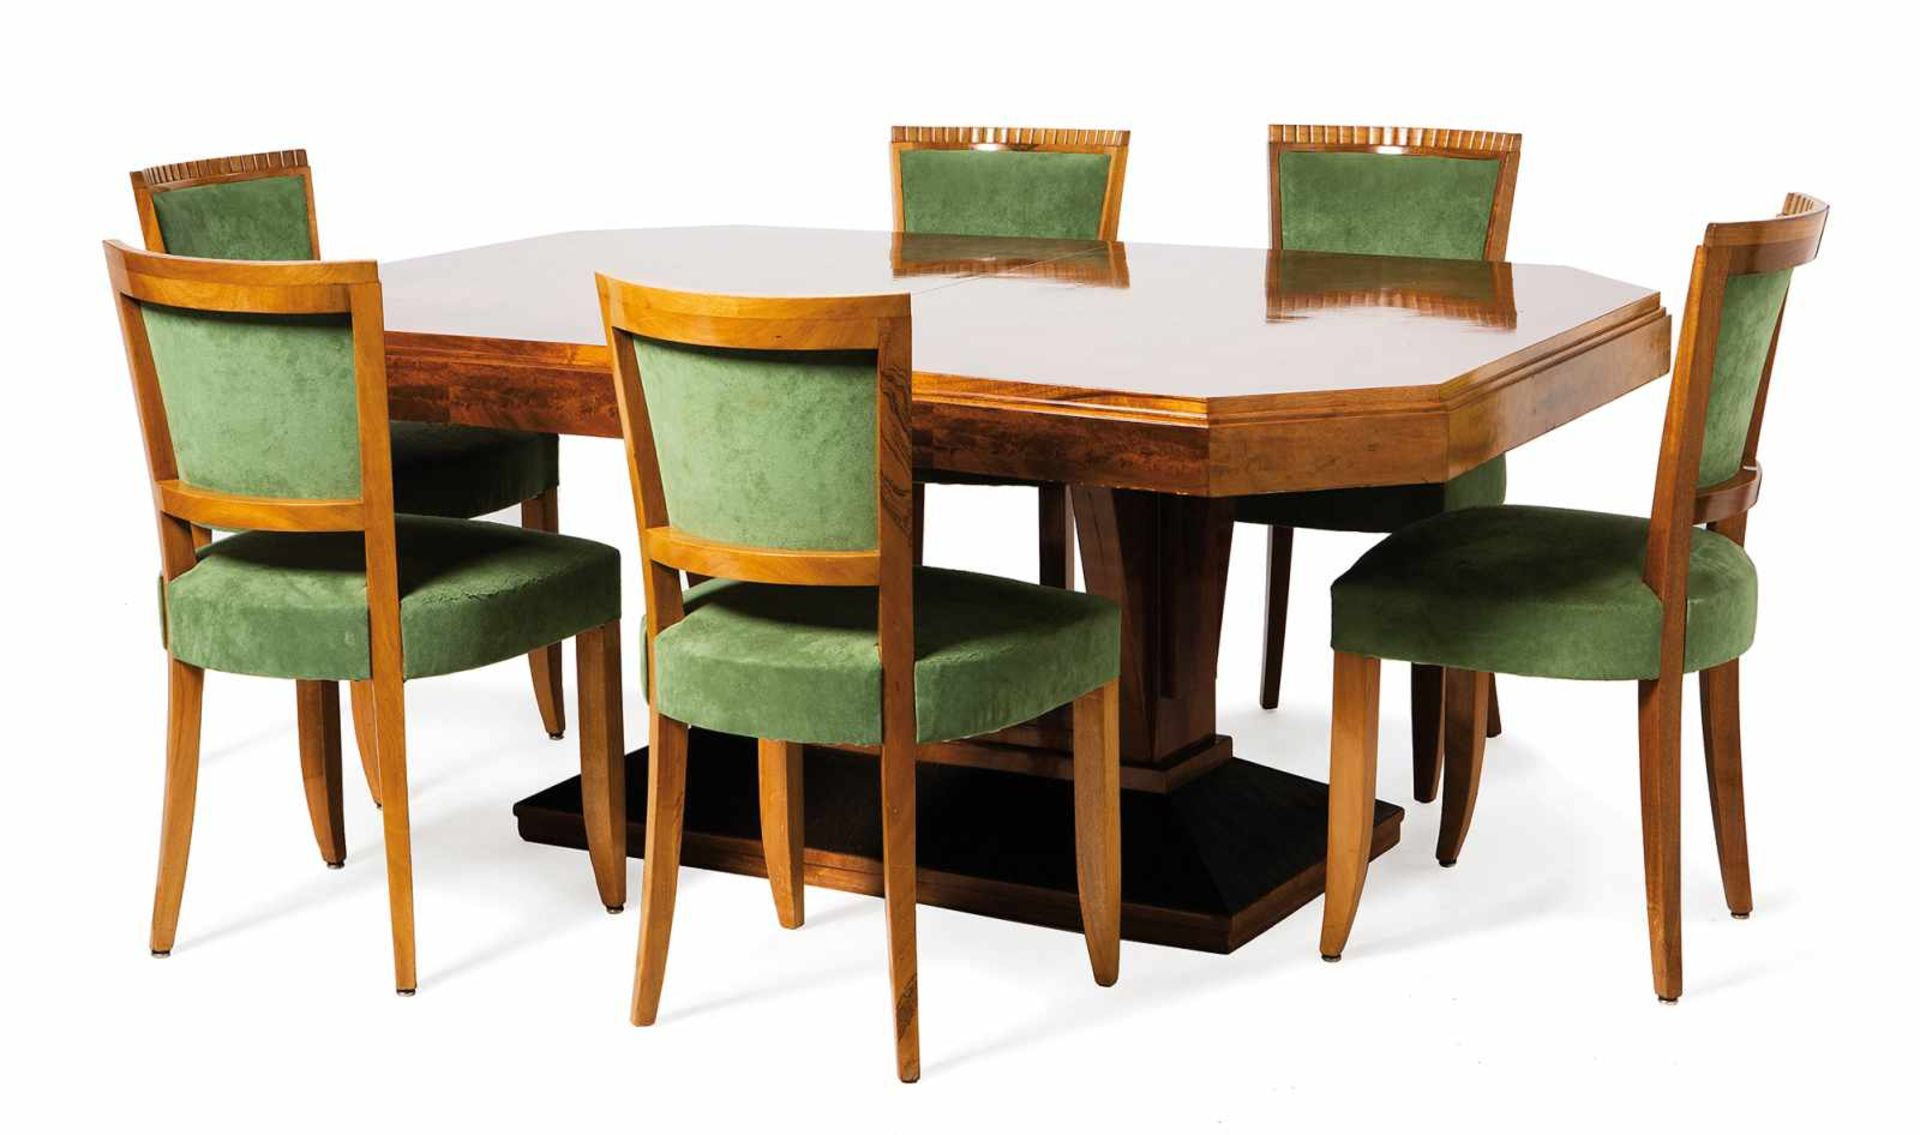 Los 54 - Light mahogany veneered wooden table and eight chairs. France. Art Deco. Circa 1930.